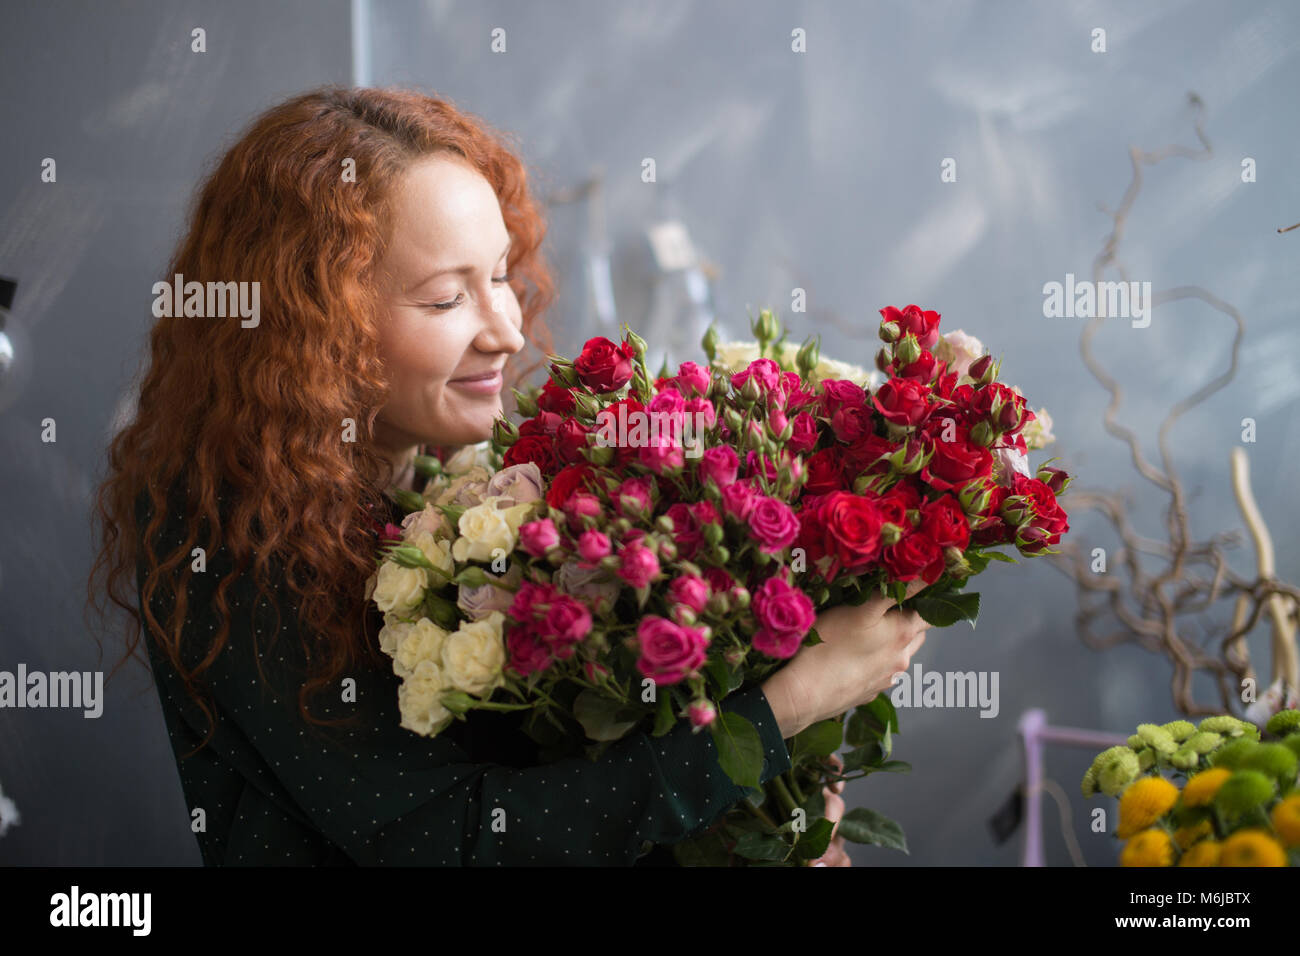 Female florist smelling flower bouquet in the flower shop Stock Photo